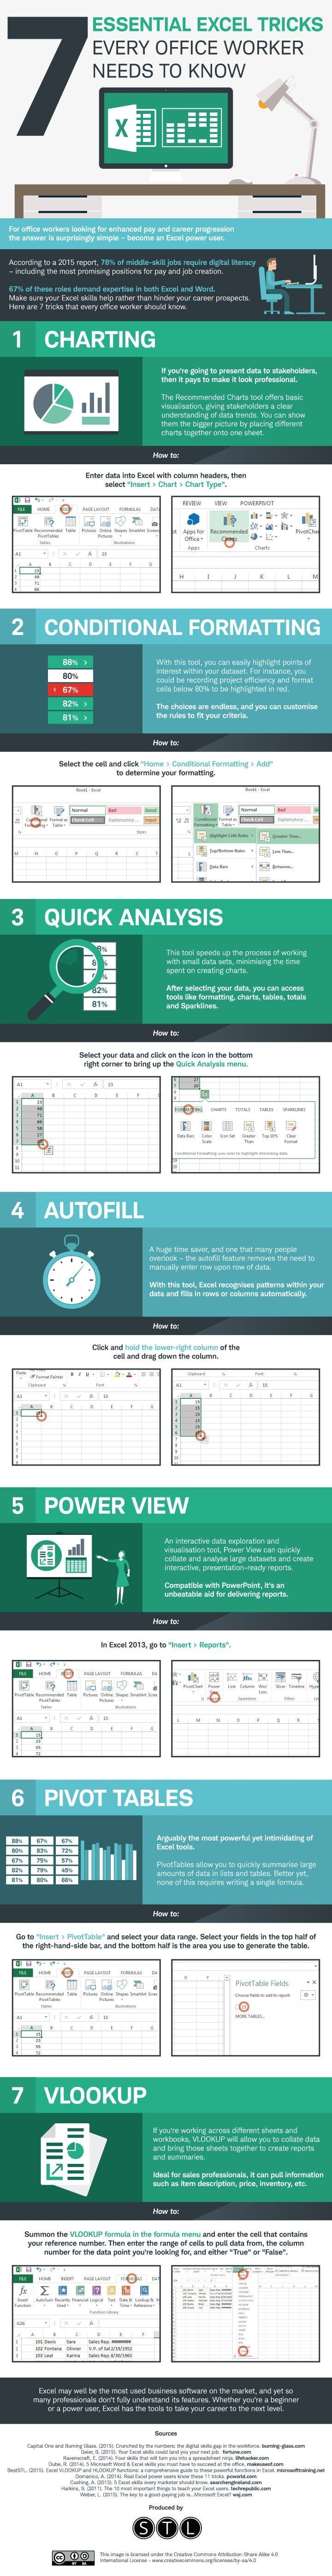 This infographic shows seven tricks that you need to know when using Excel (I'm so geeking out over this right now - LOL).